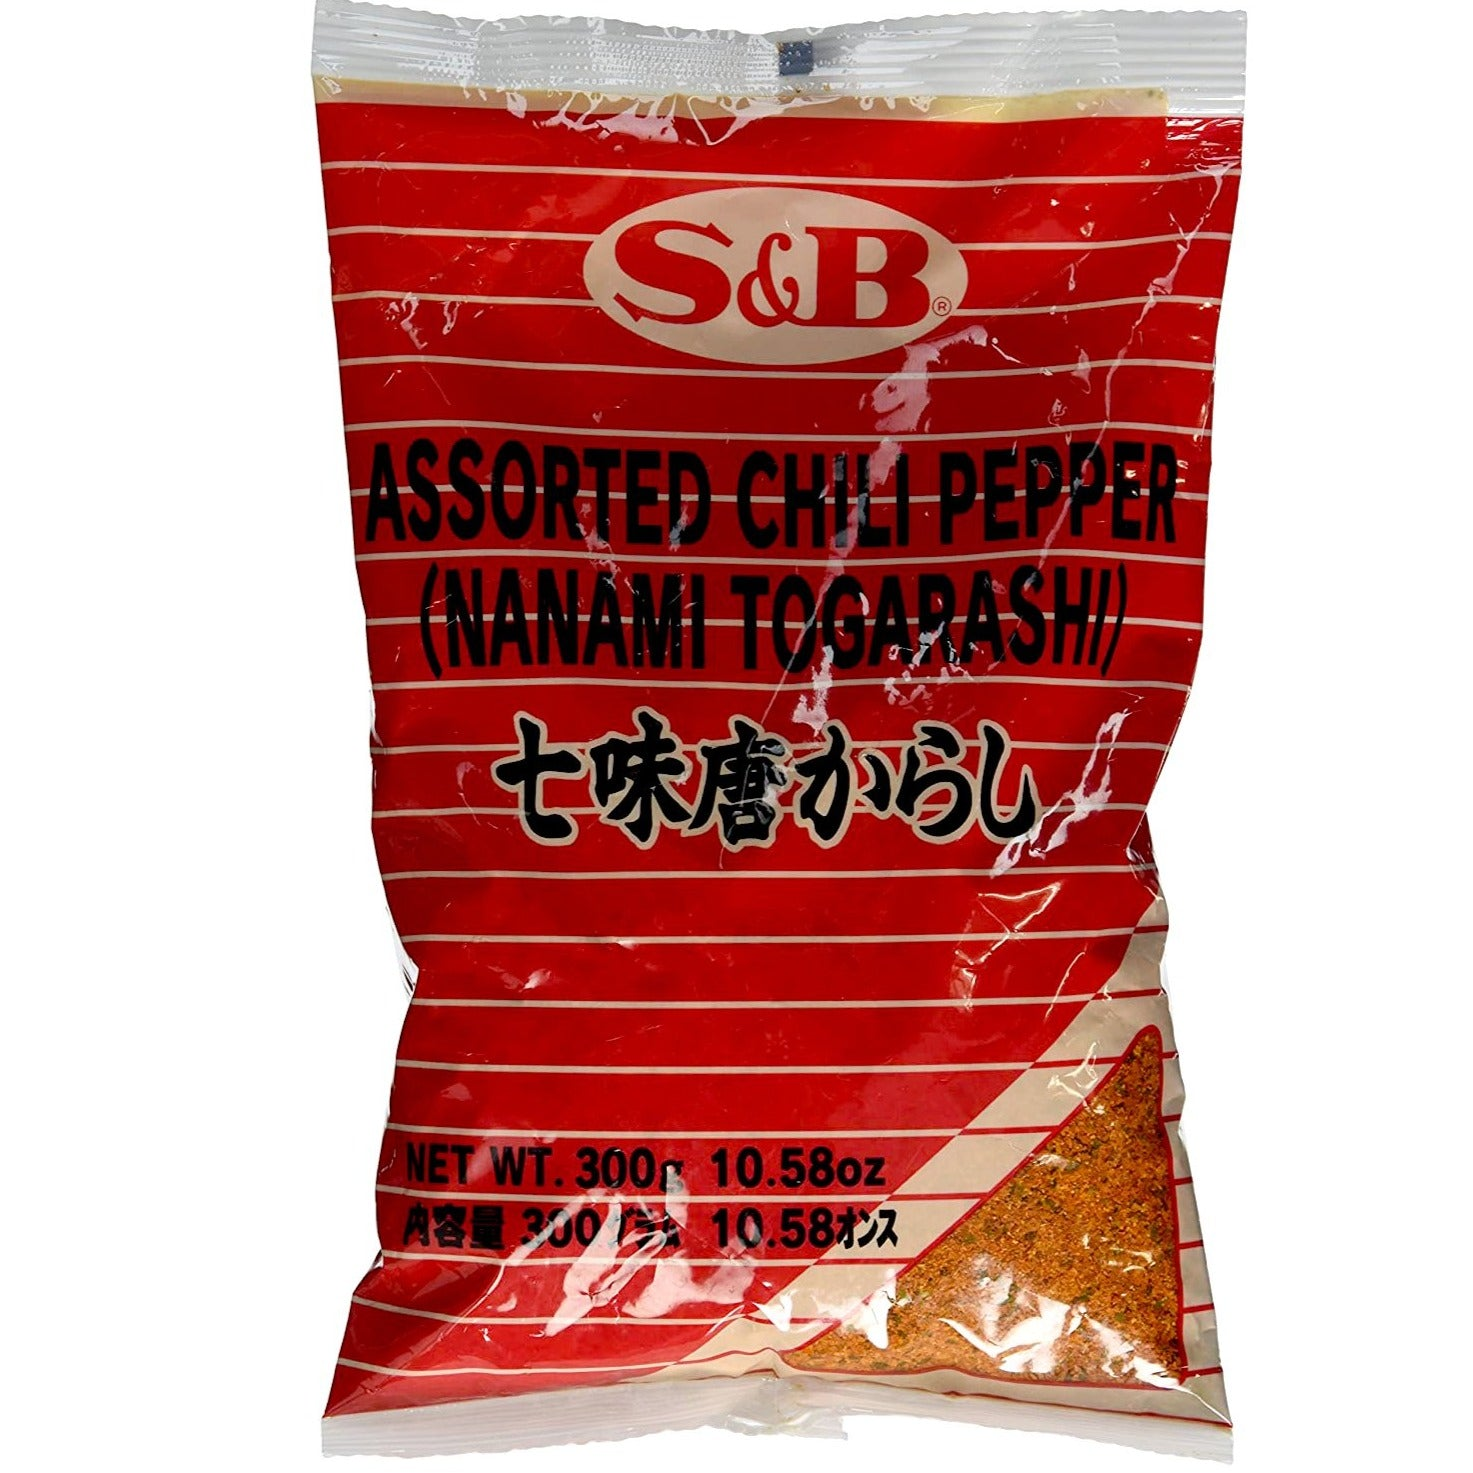 S&B 7 Assorted Chili Pepper | Pepper Spice Mix (Nanami / Shichimi Togarashi) 10.58 Oz (300 g)